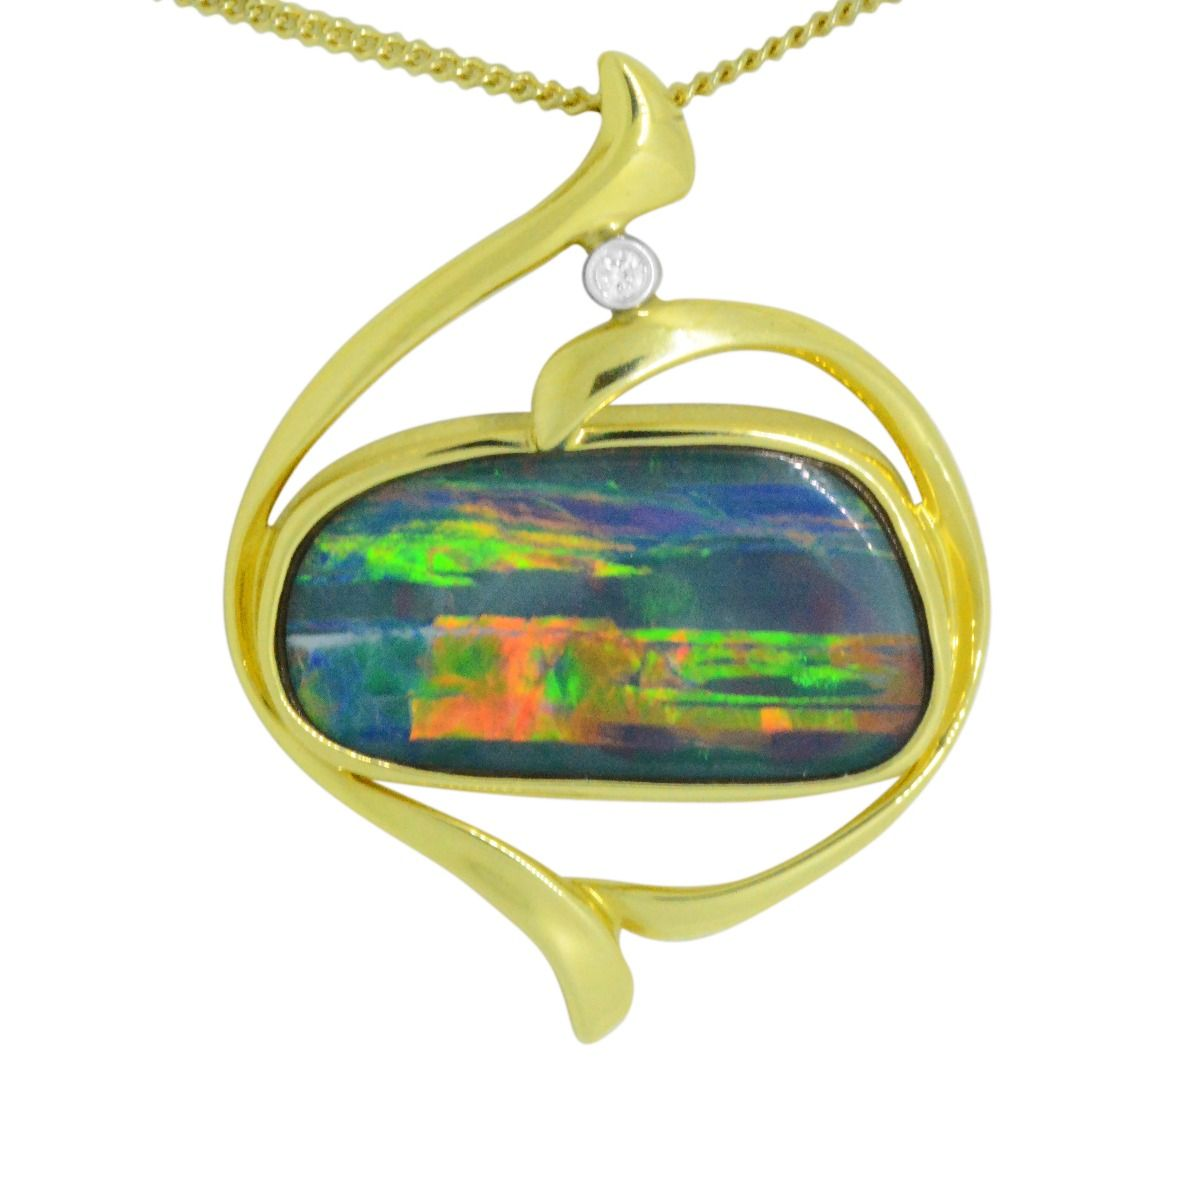 14ct yellow gold doublet opal pendant (24mmx16mm)